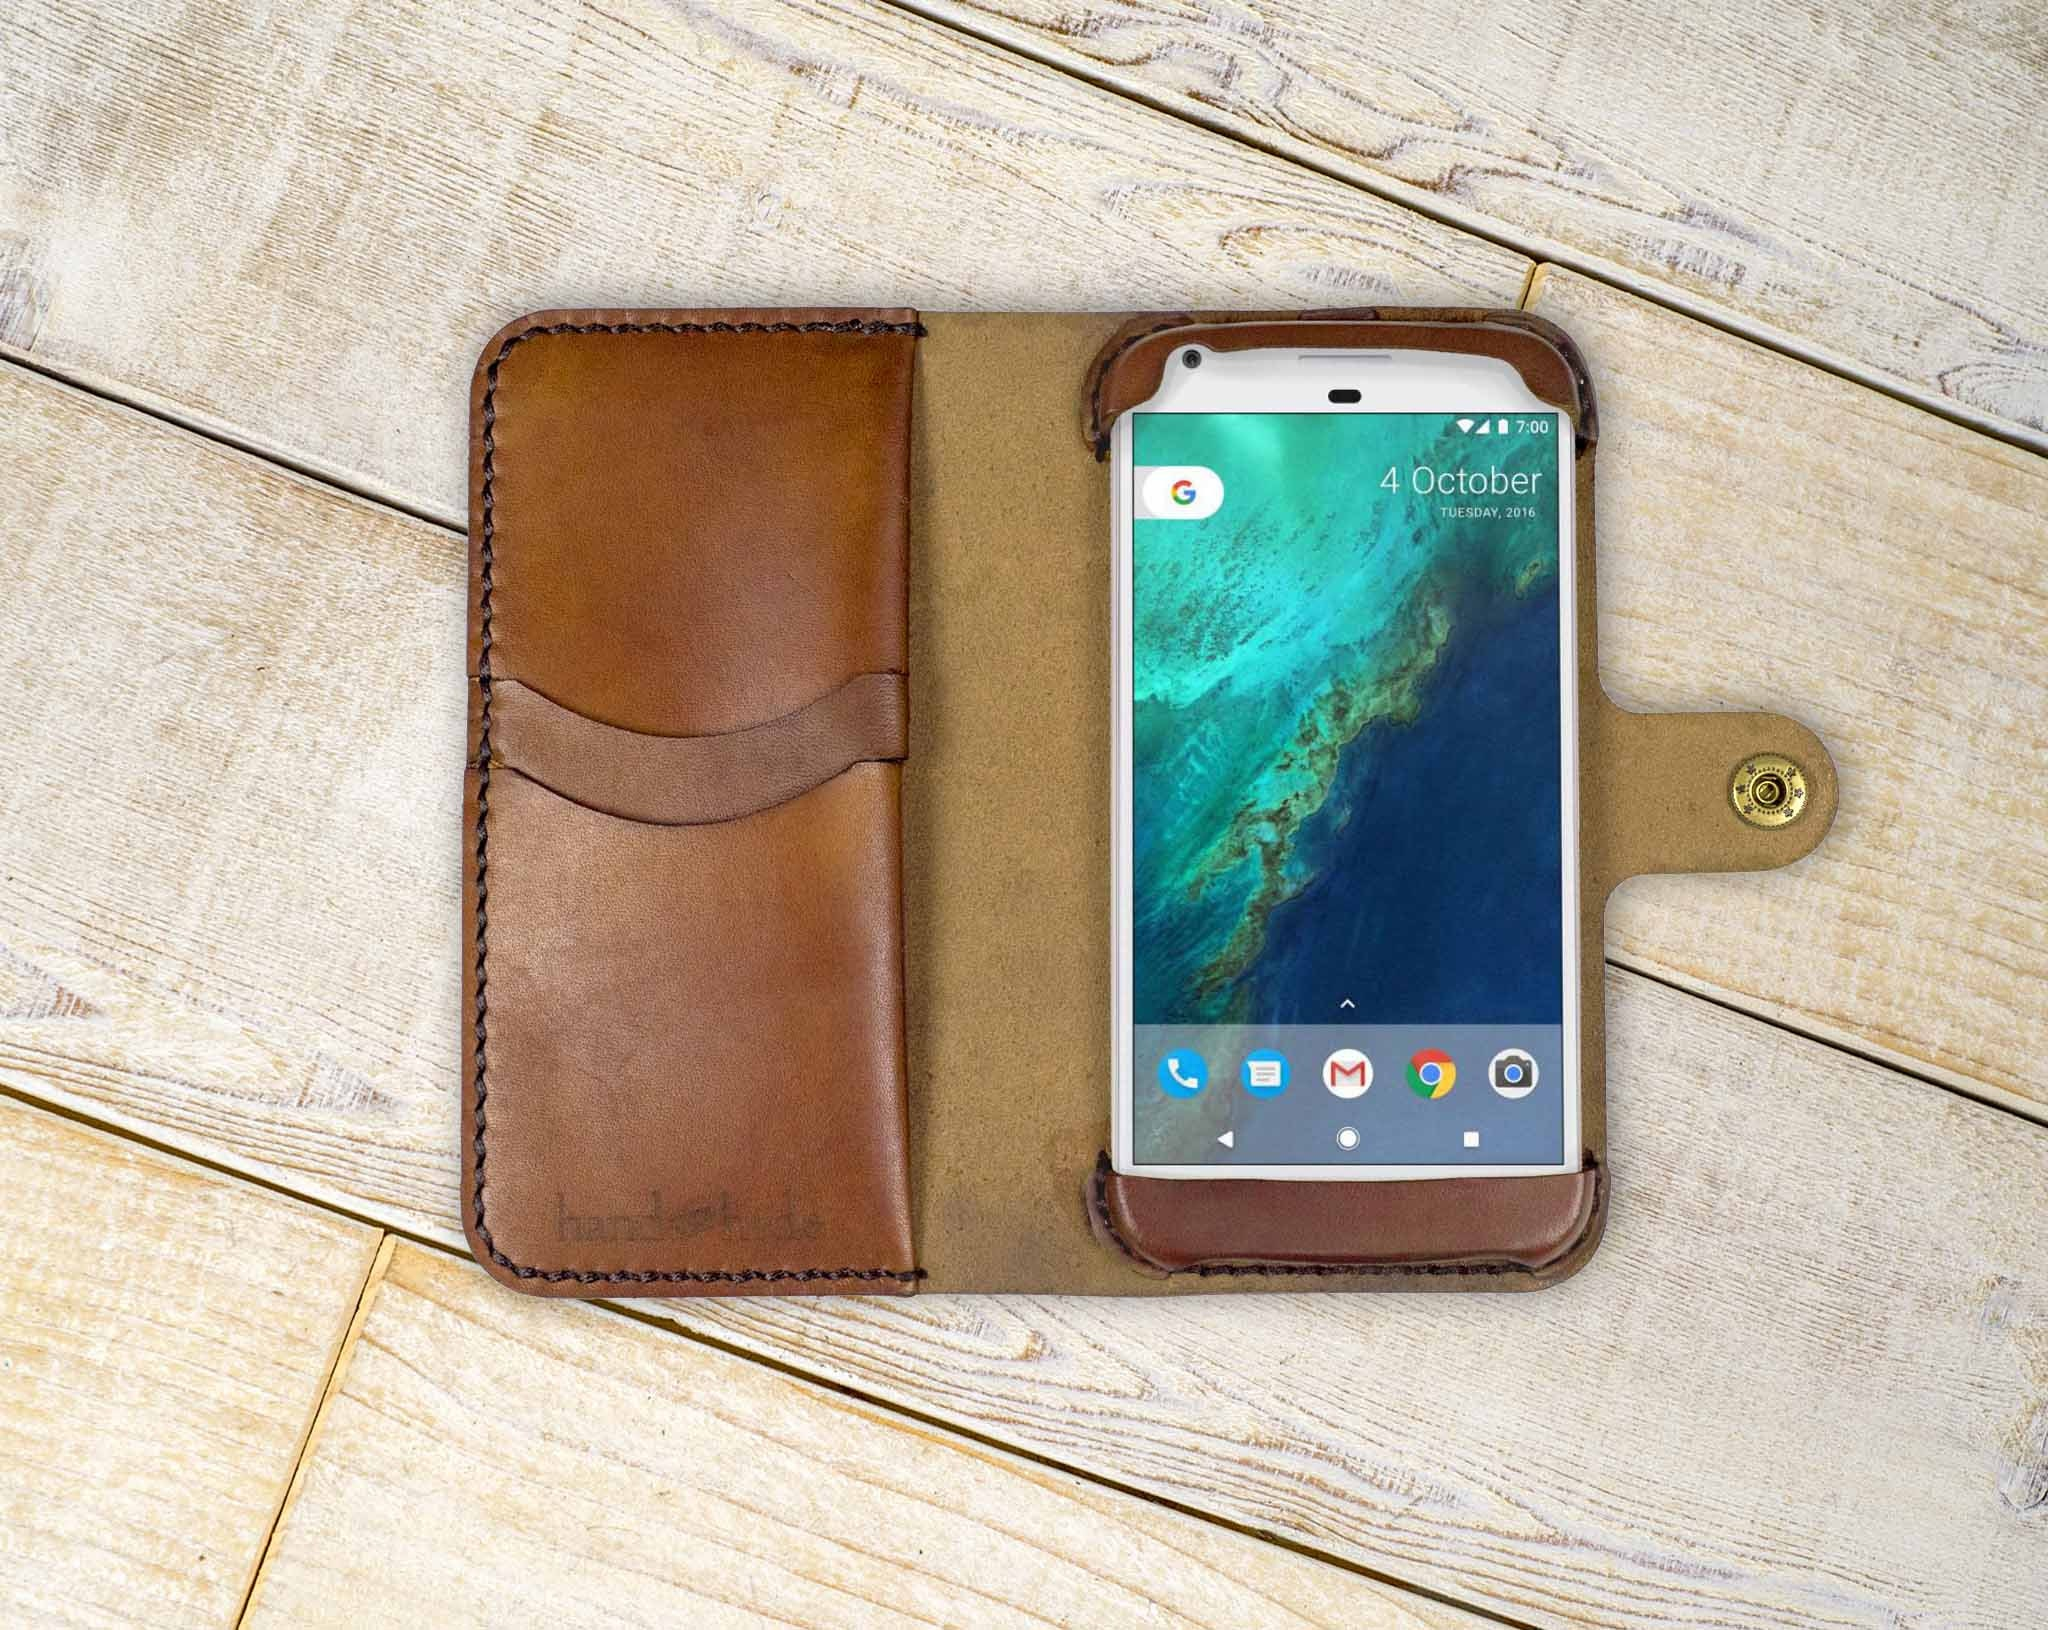 competitive price c24da f8740 Google Pixel Leather Wallet Case, Google pixel wallet, pixel case, google  pixel wristlet, pixel wallet, custom pixel case